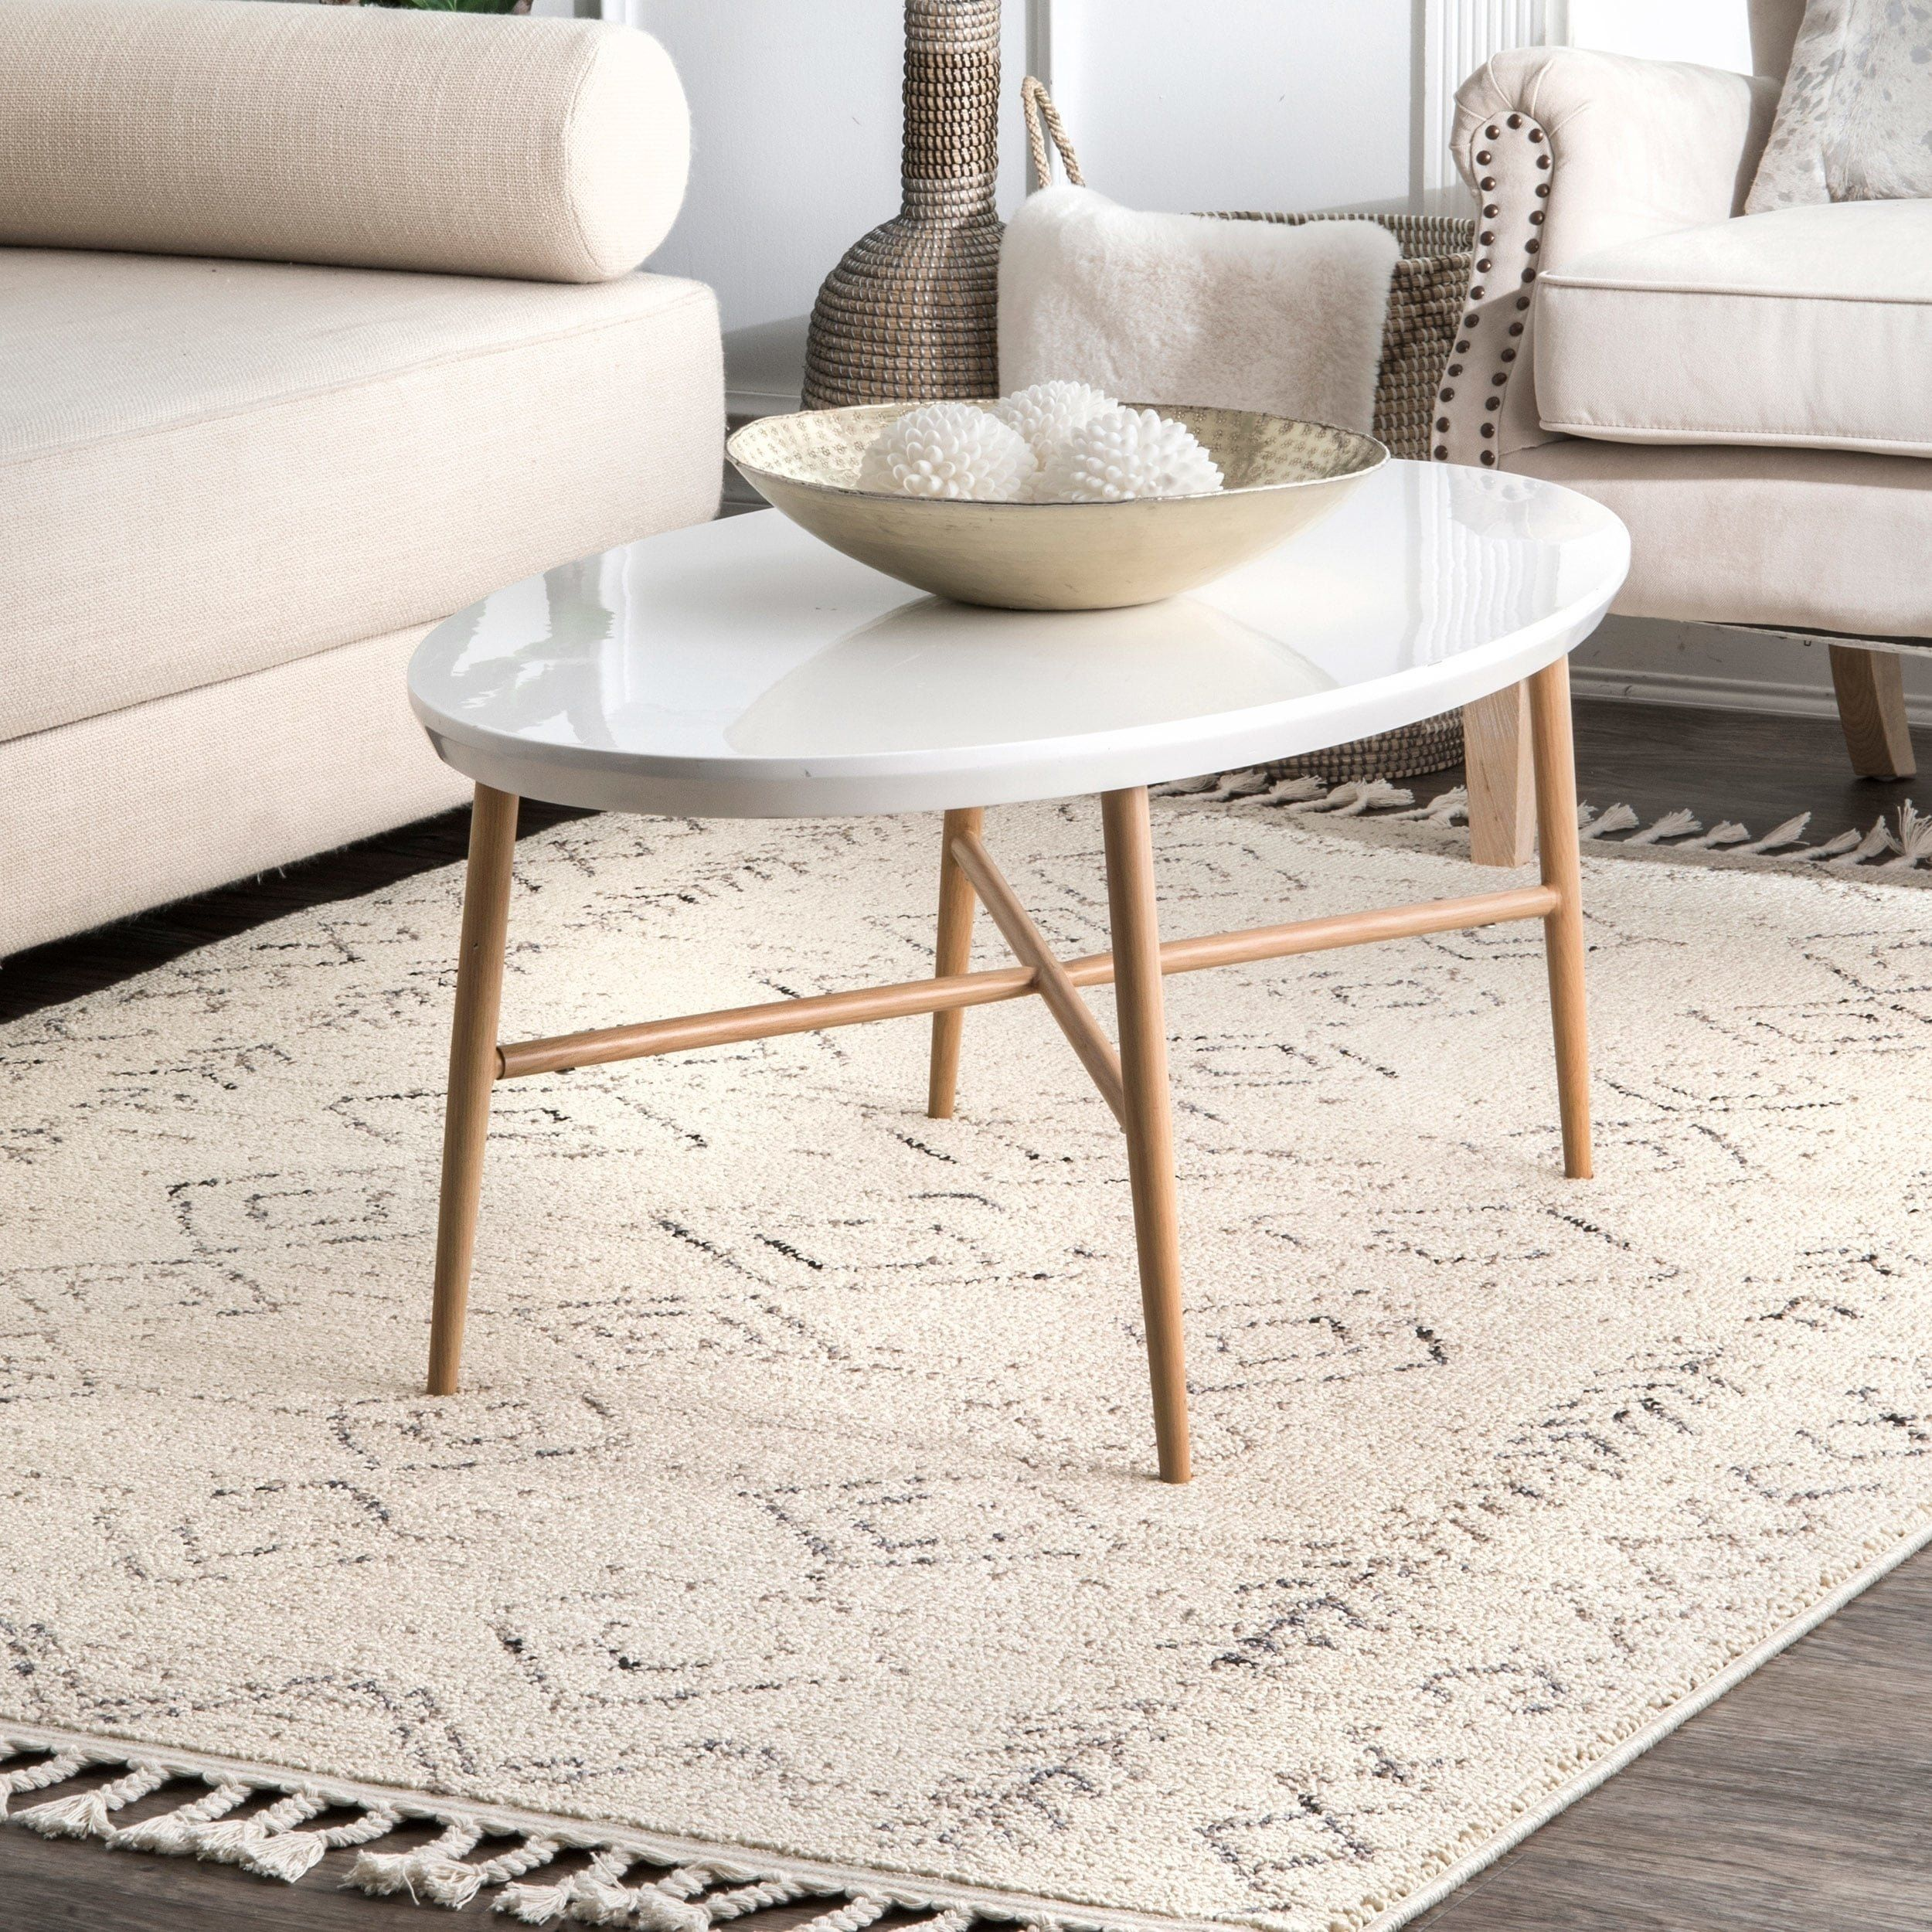 The Curated Nomad Ashbury Ivory Contemporary Geometric Moroccan Tassel Area Rug 5 X 8 Ivory Area Rugs For Sale Machine Made Rugs Area Rugs [ 2500 x 2500 Pixel ]